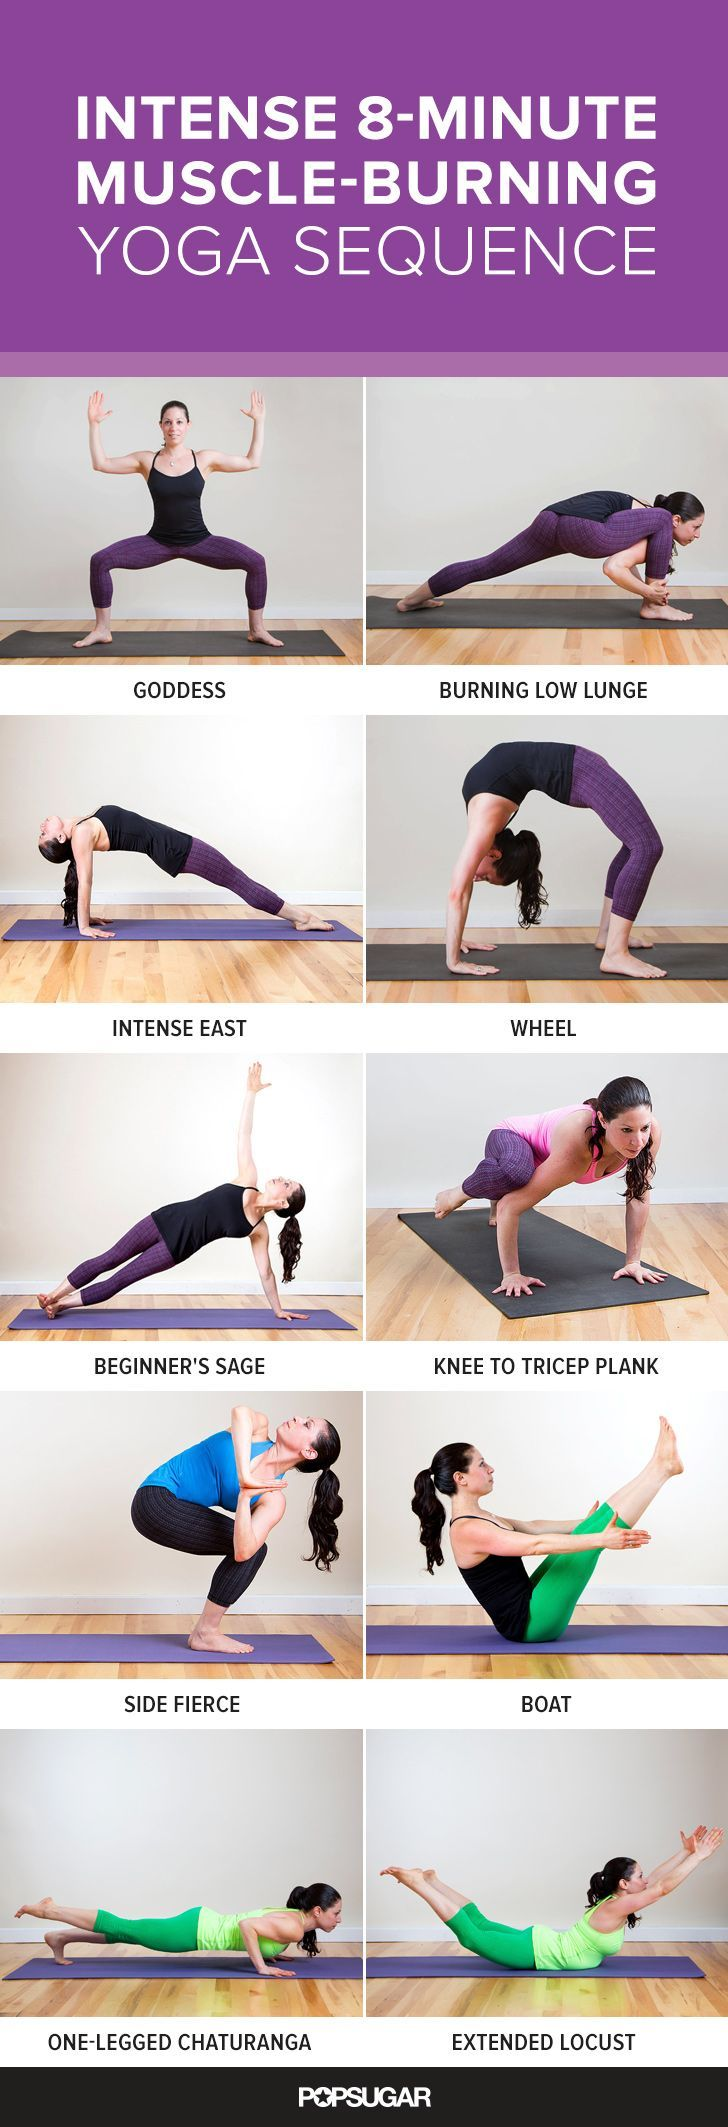 Get an Intense Burn With This 8-Minute Yoga Sequence – Albertinchen Engel